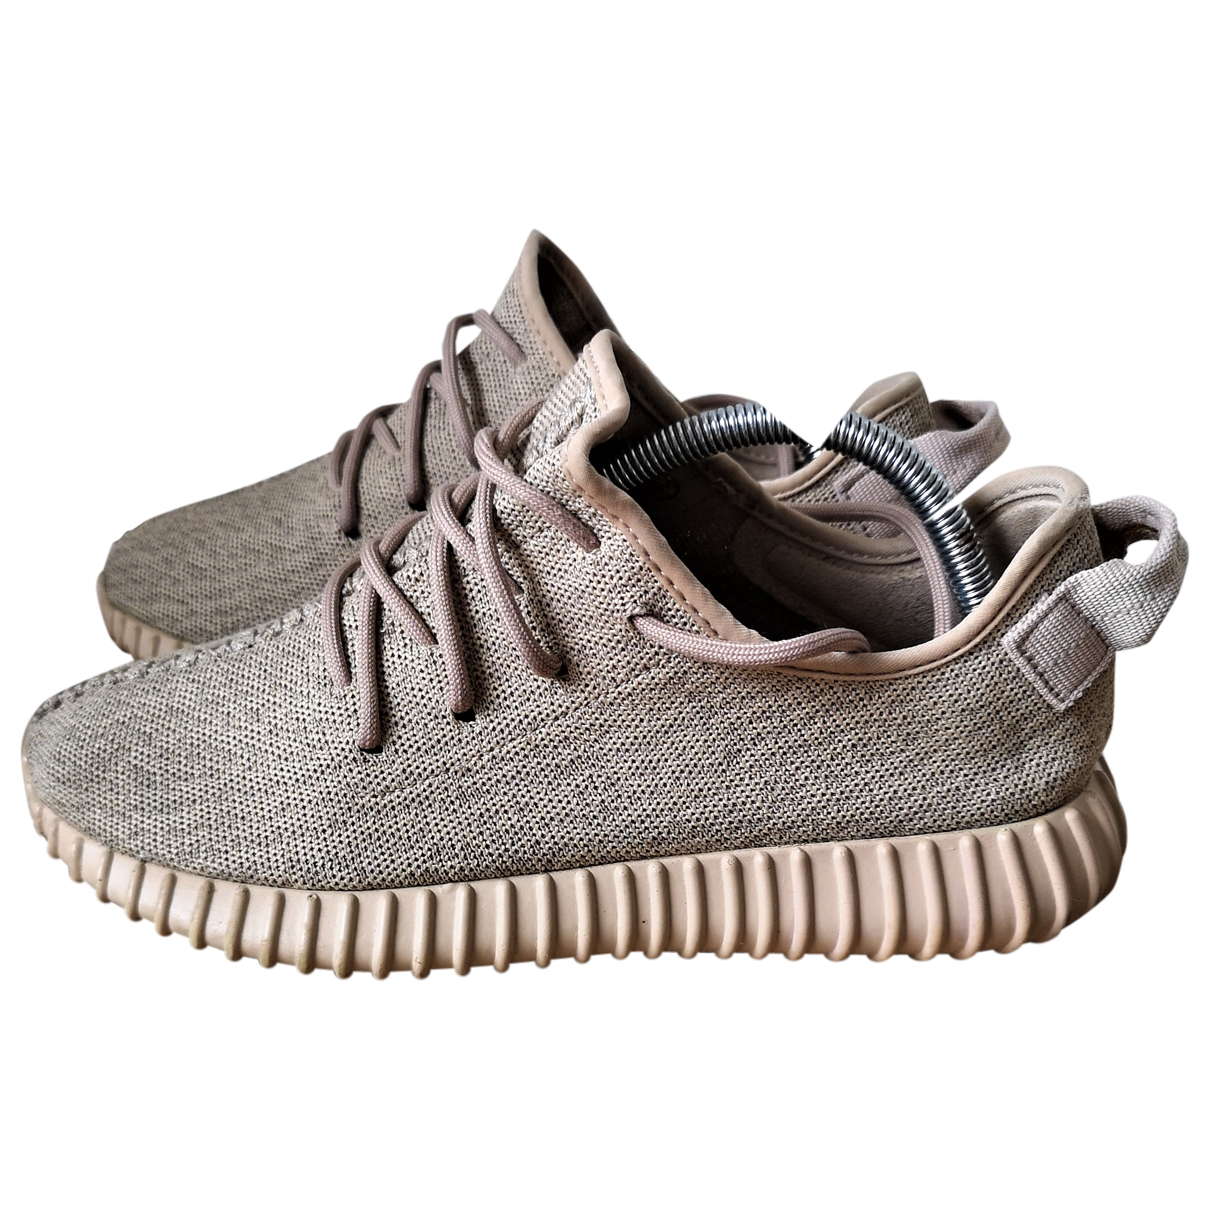 Yeezy X Adidas - Baskets Boost 350 V1 pour homme en toile - camel